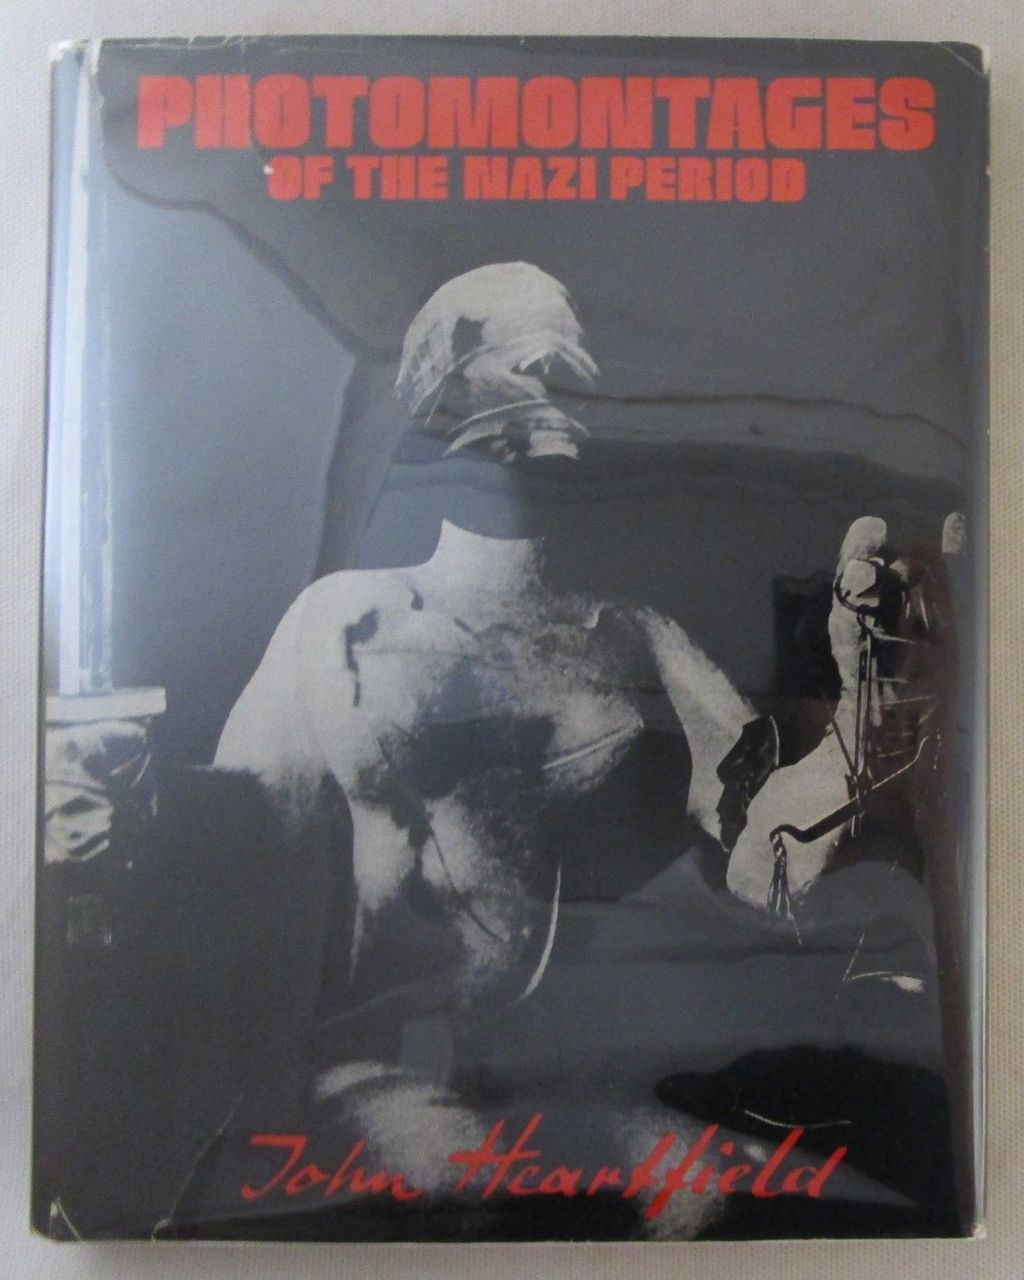 PHOTOMONTAGES OF THE NAZI PERIOD, by John Heartfield - 1977 [1st Ed]